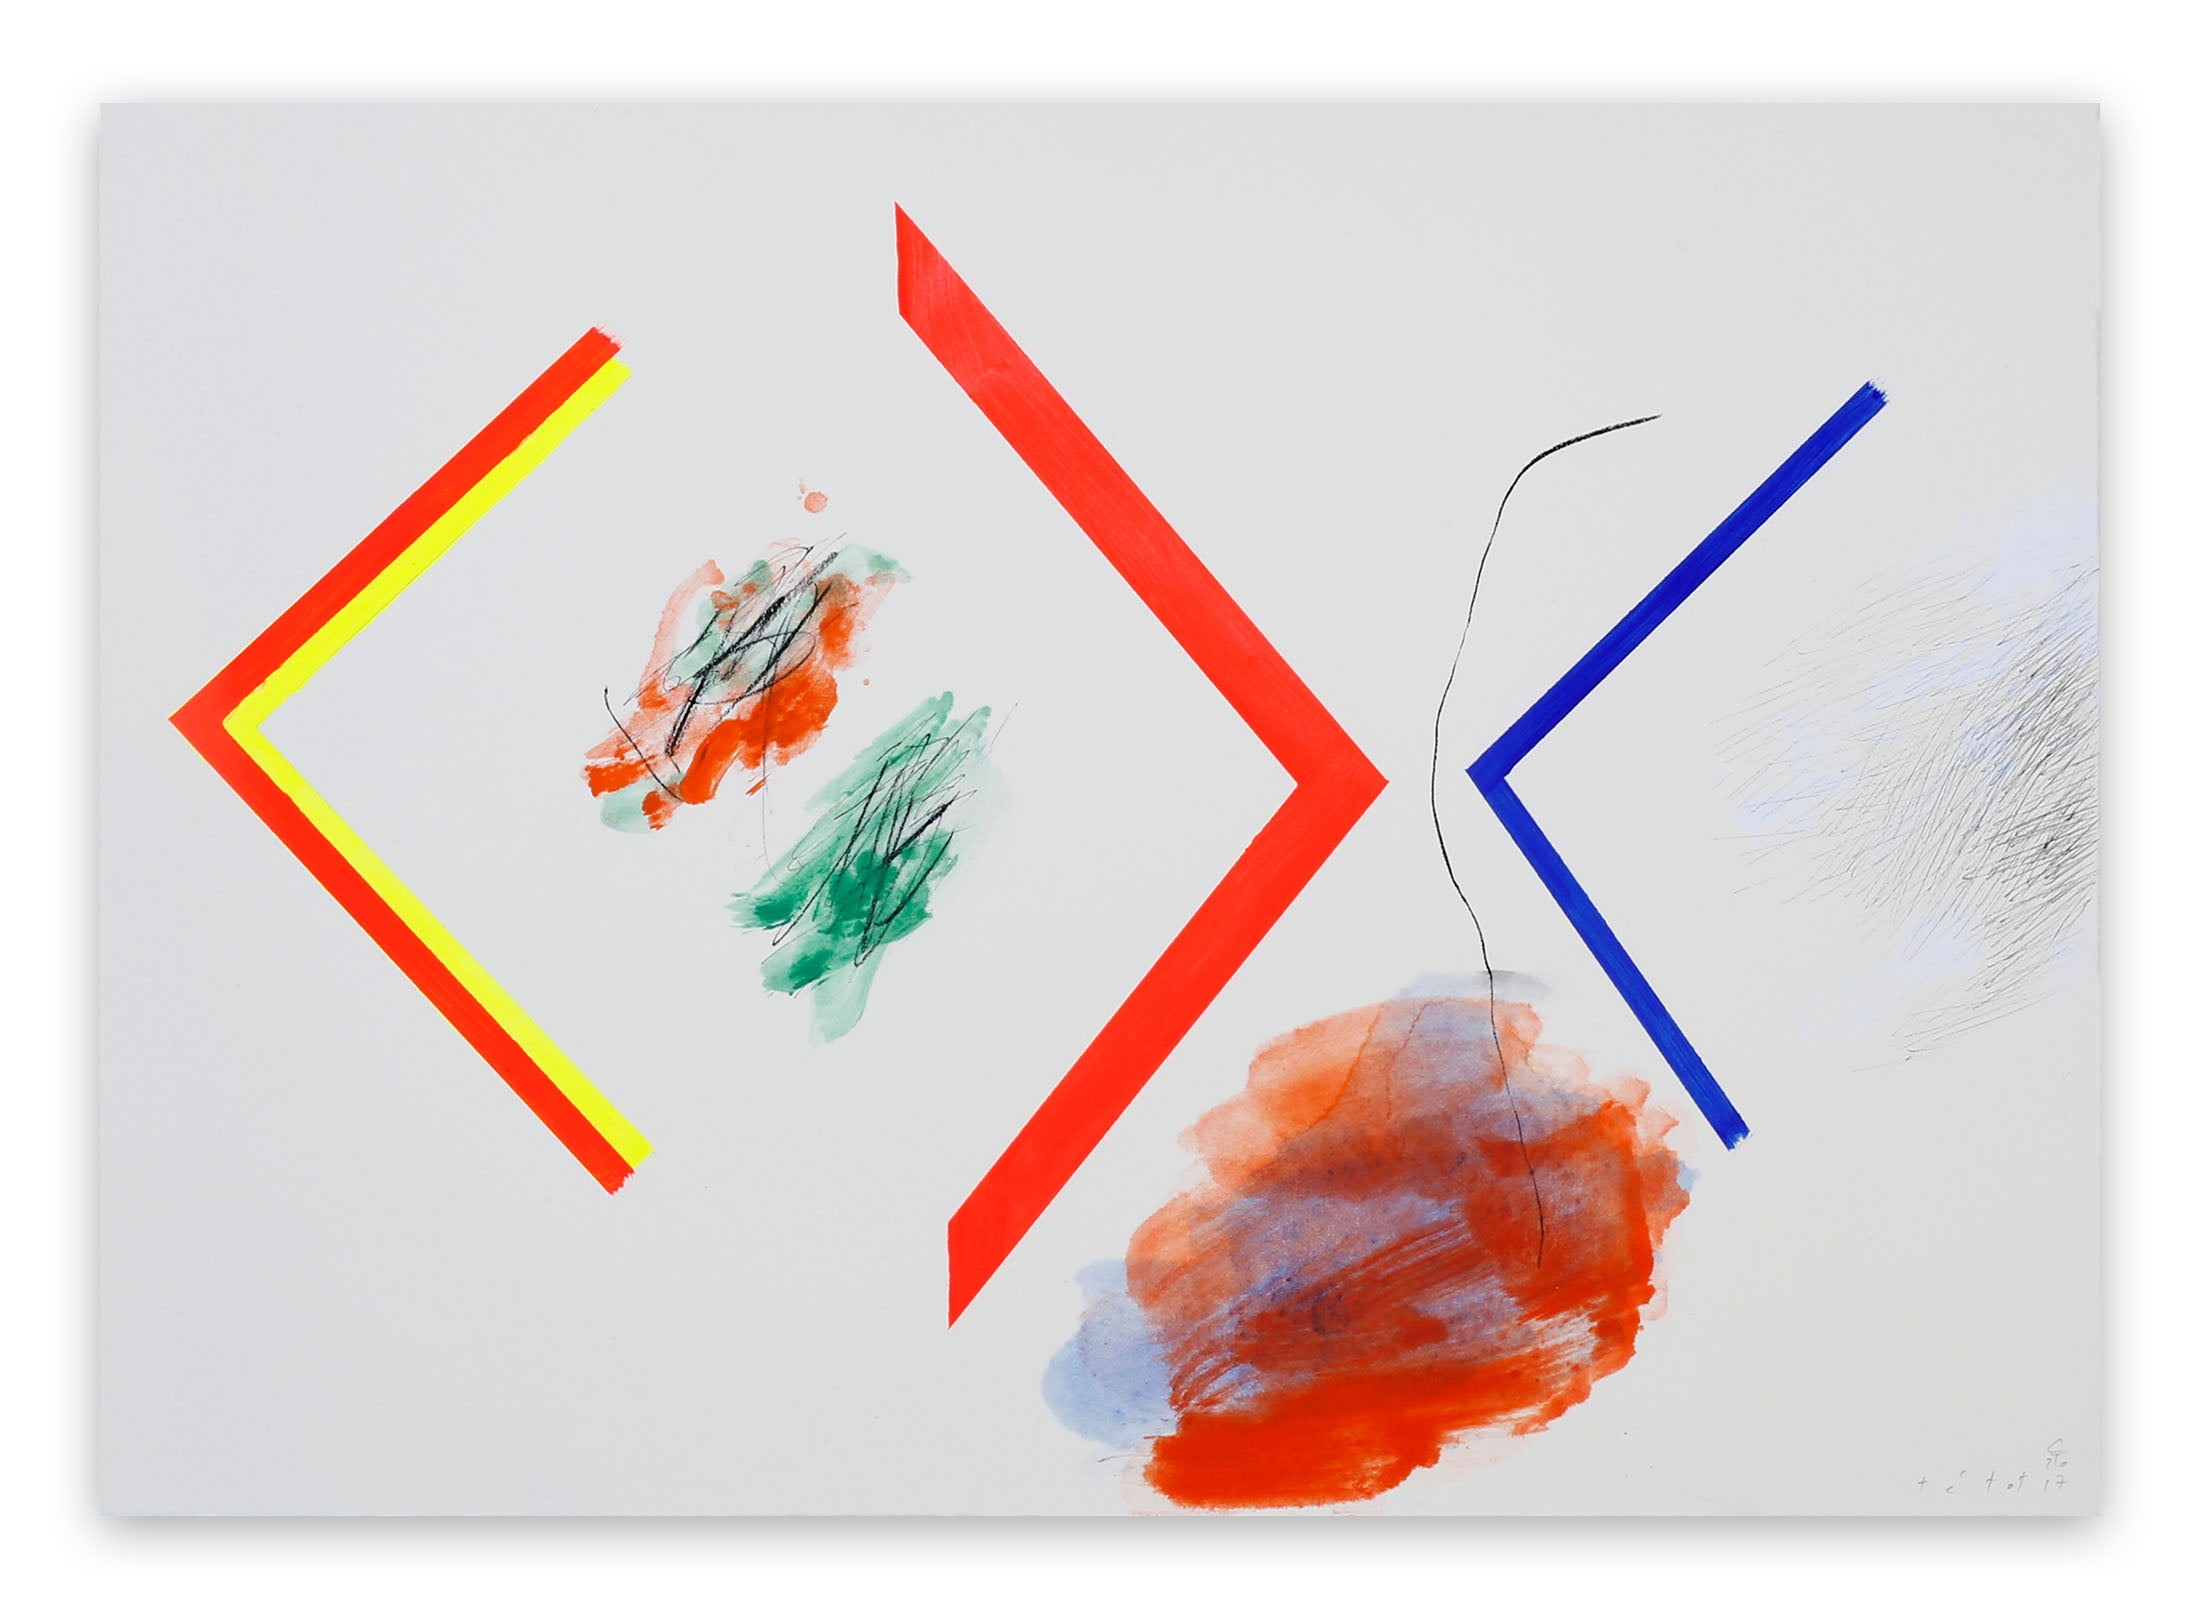 Untitled 1 (Abstract painting)